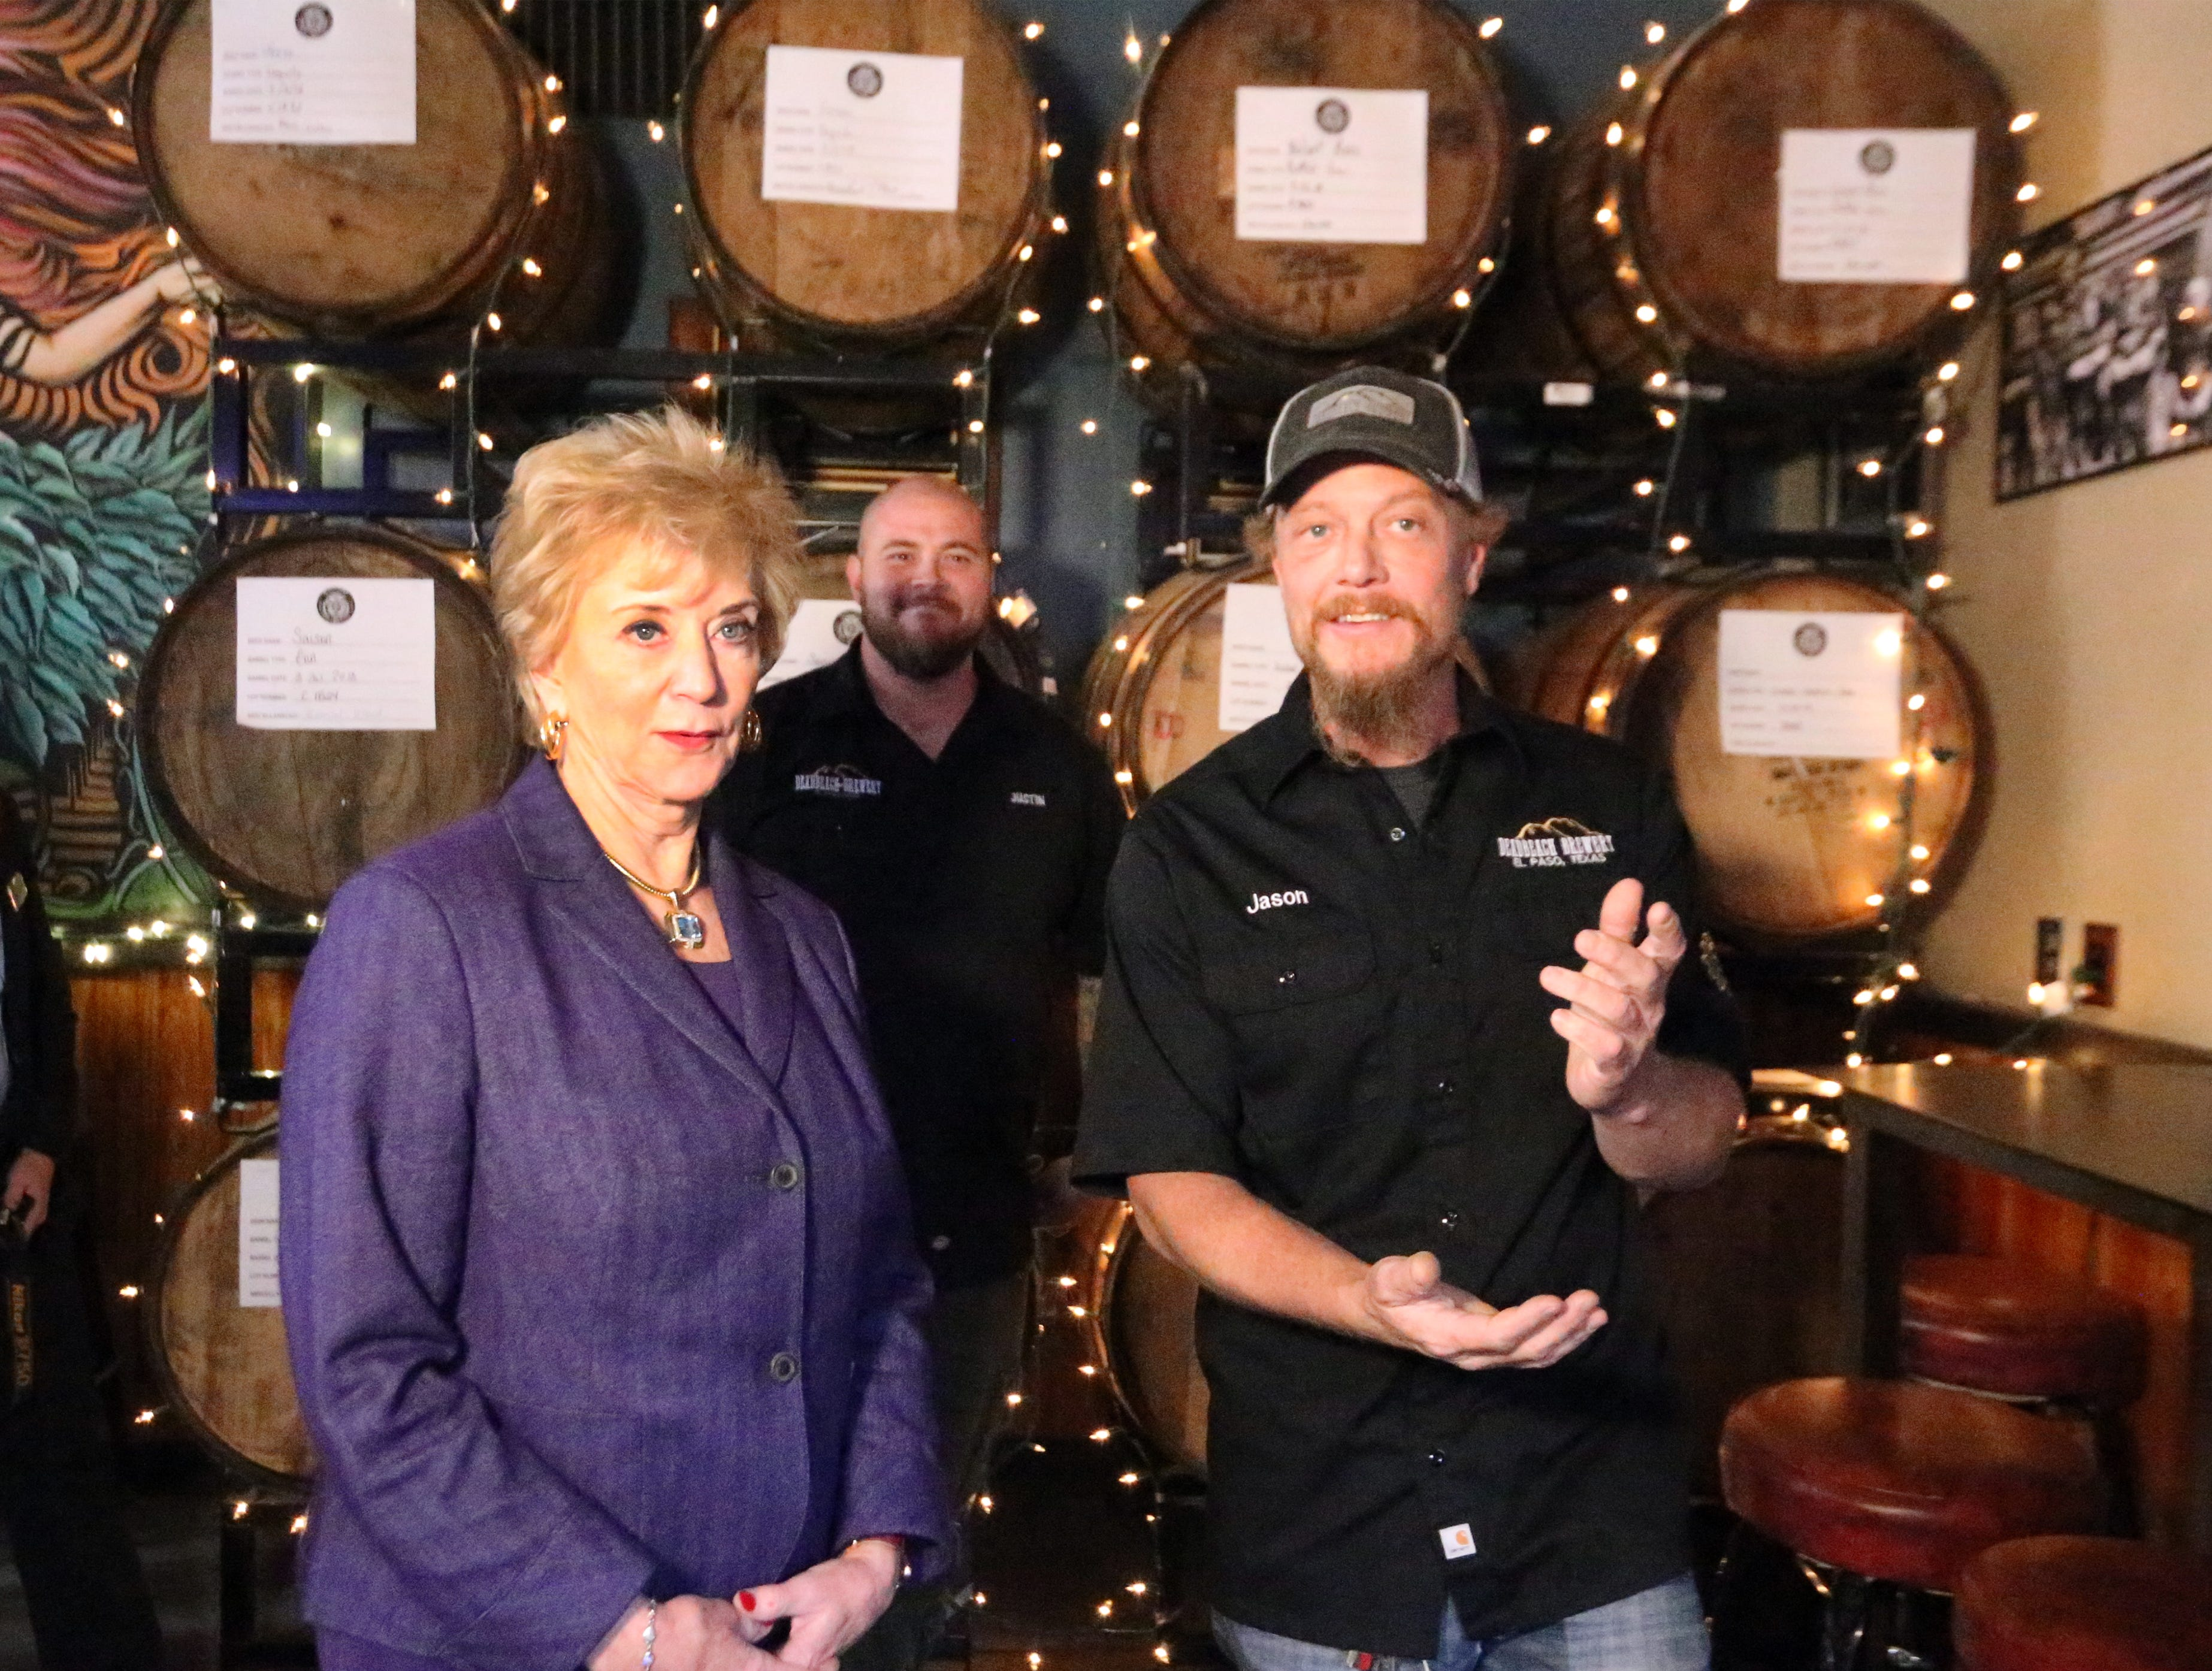 U.S. Small Business Administration director Linda McMahon takes a tour of DeadBeach Brewery at 406 Durango Street with co-owner Jason Hunt during a visit to El Paso Tuesday. In background is co-owner Justin Ordoñez.